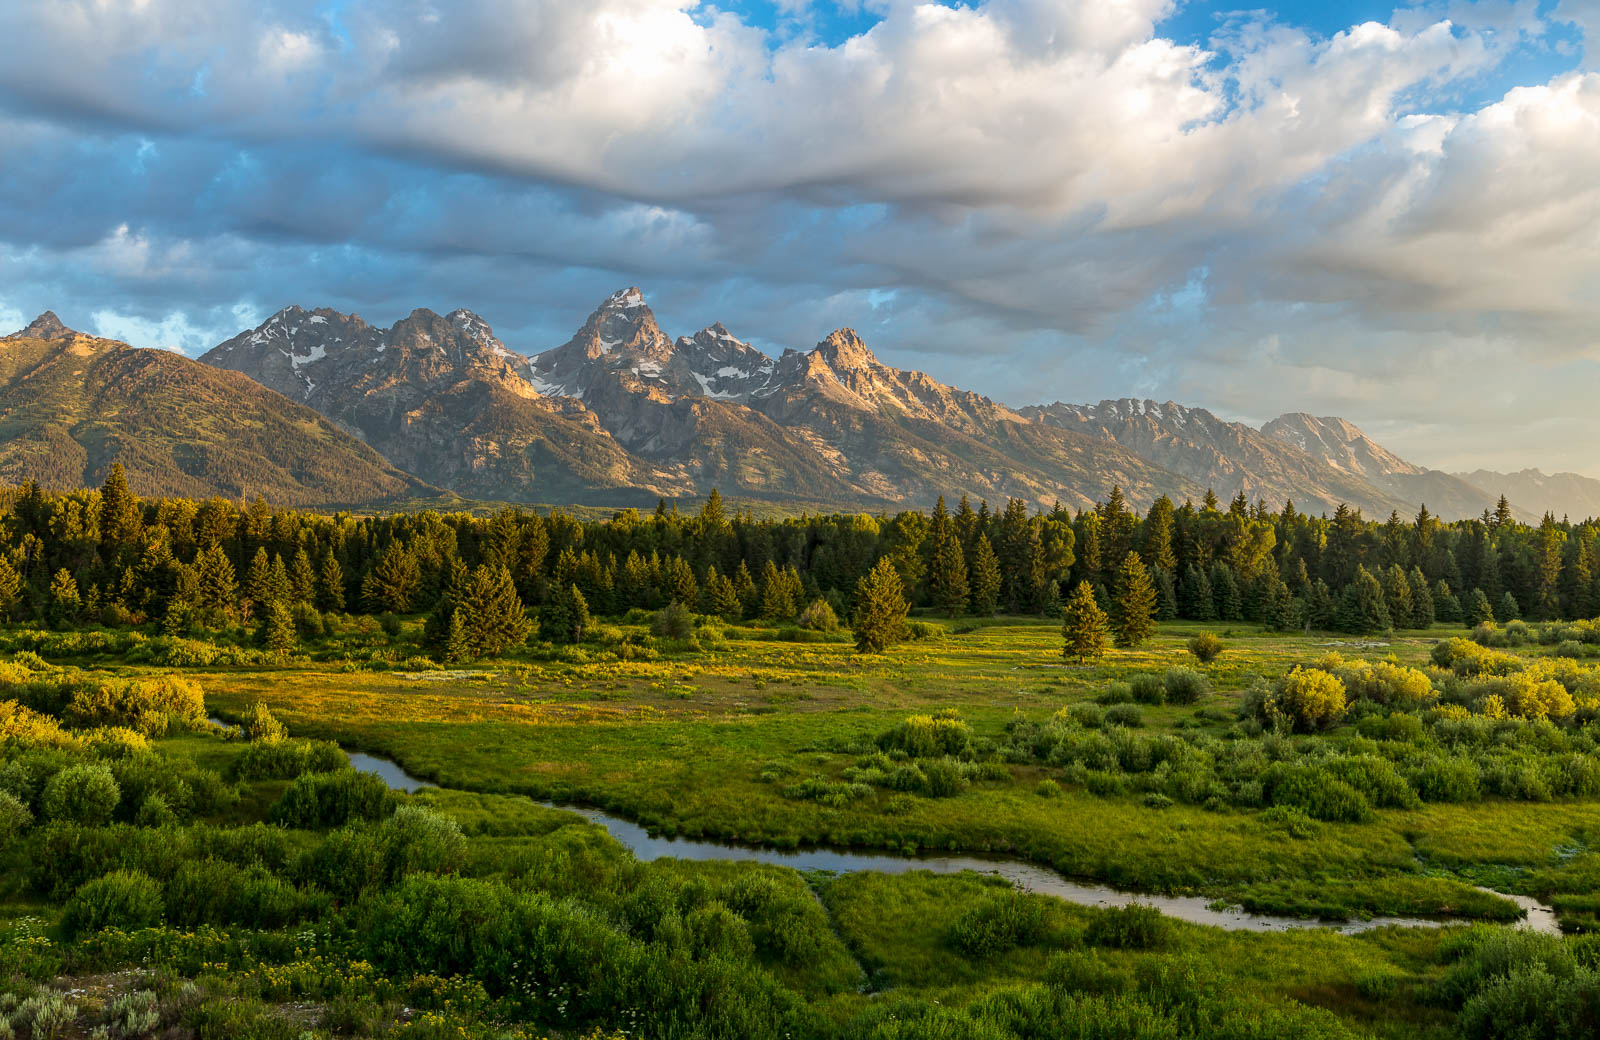 A magical morning in Grand Teton National Park